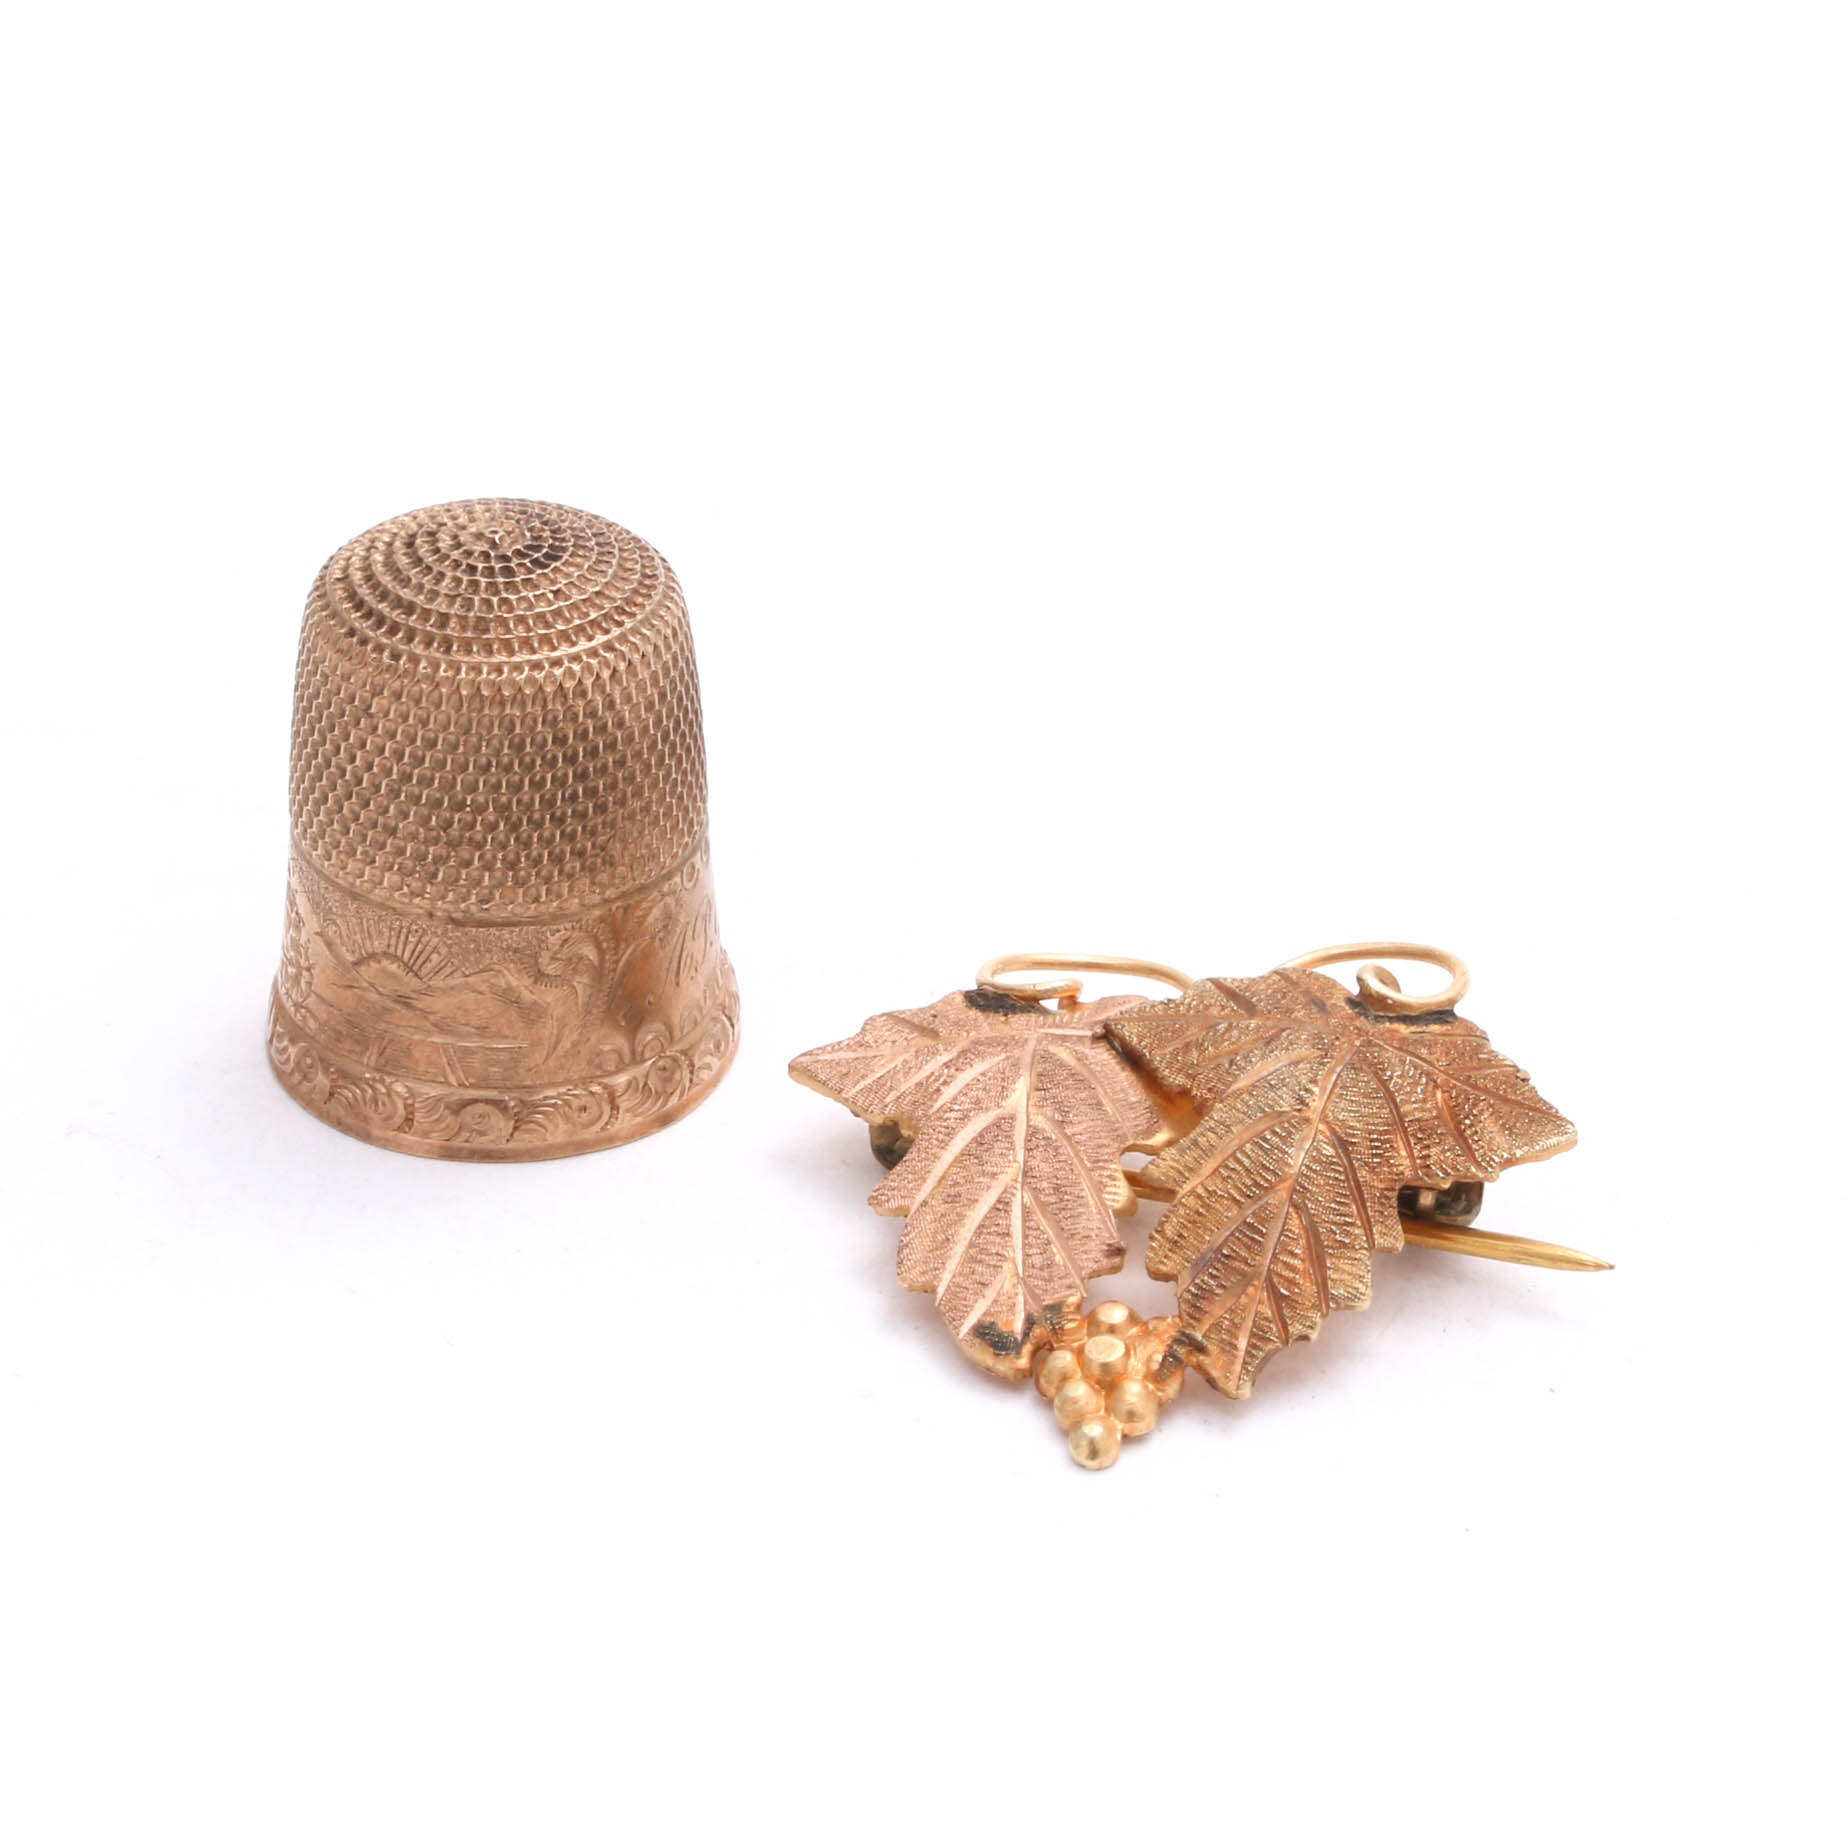 Vintage 18K Rose and Yellow Gold Leaf Brooch and 10K Yellow Gold Thimble